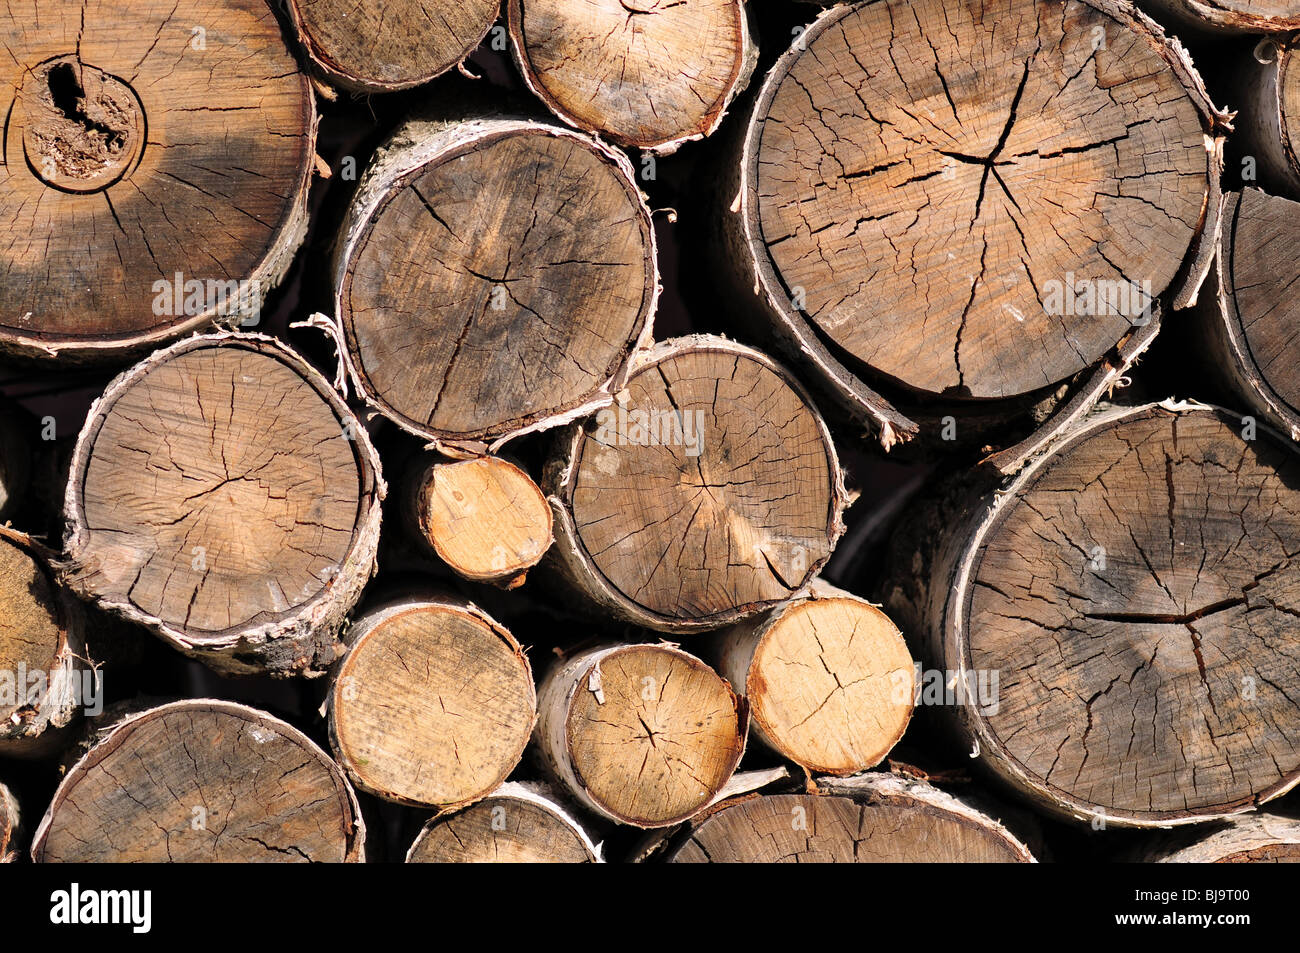 Pile of logs for firewood - Stock Image